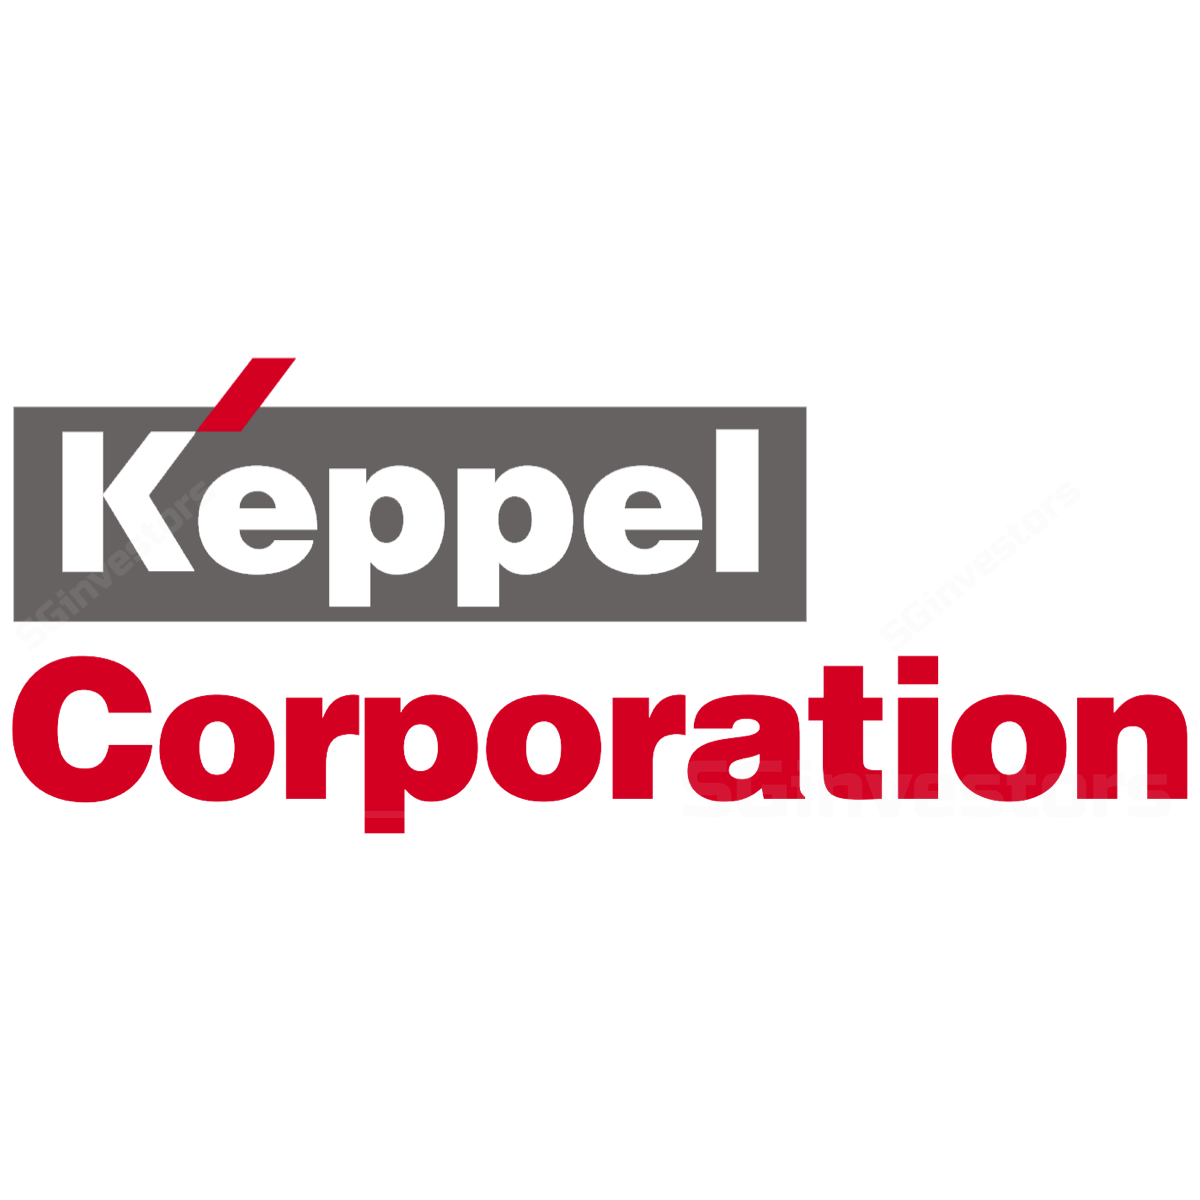 Keppel Corporation - CGS-CIMB Research 2018-07-20: It Gets Better At 50